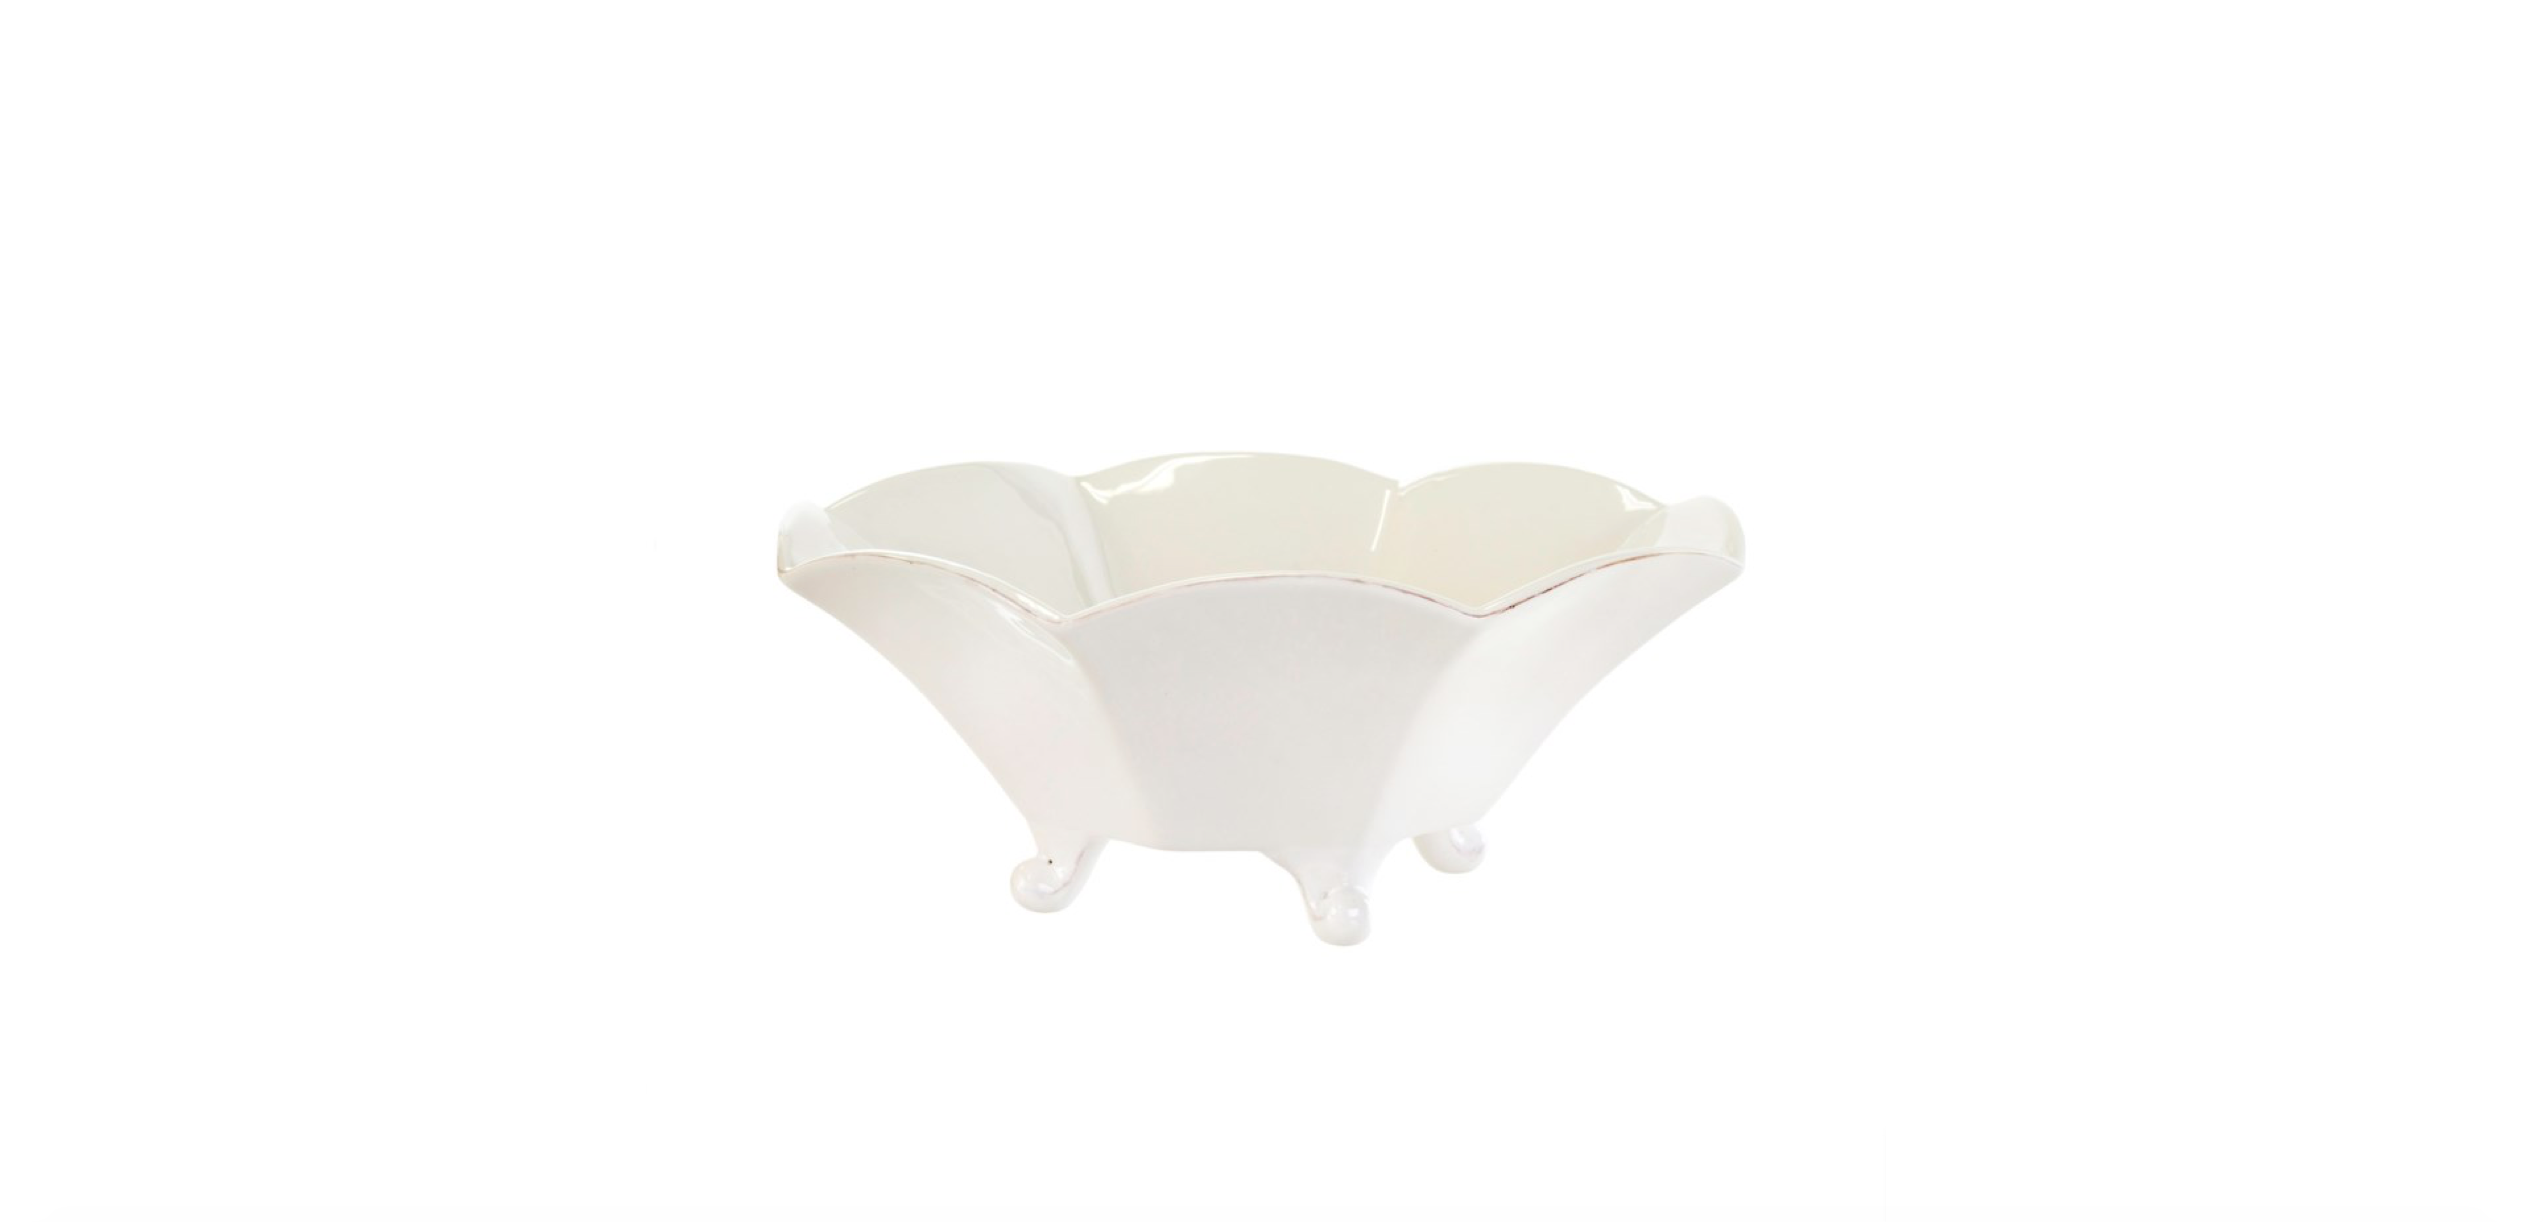 ROMA SCALLOPED SERVING BOWL